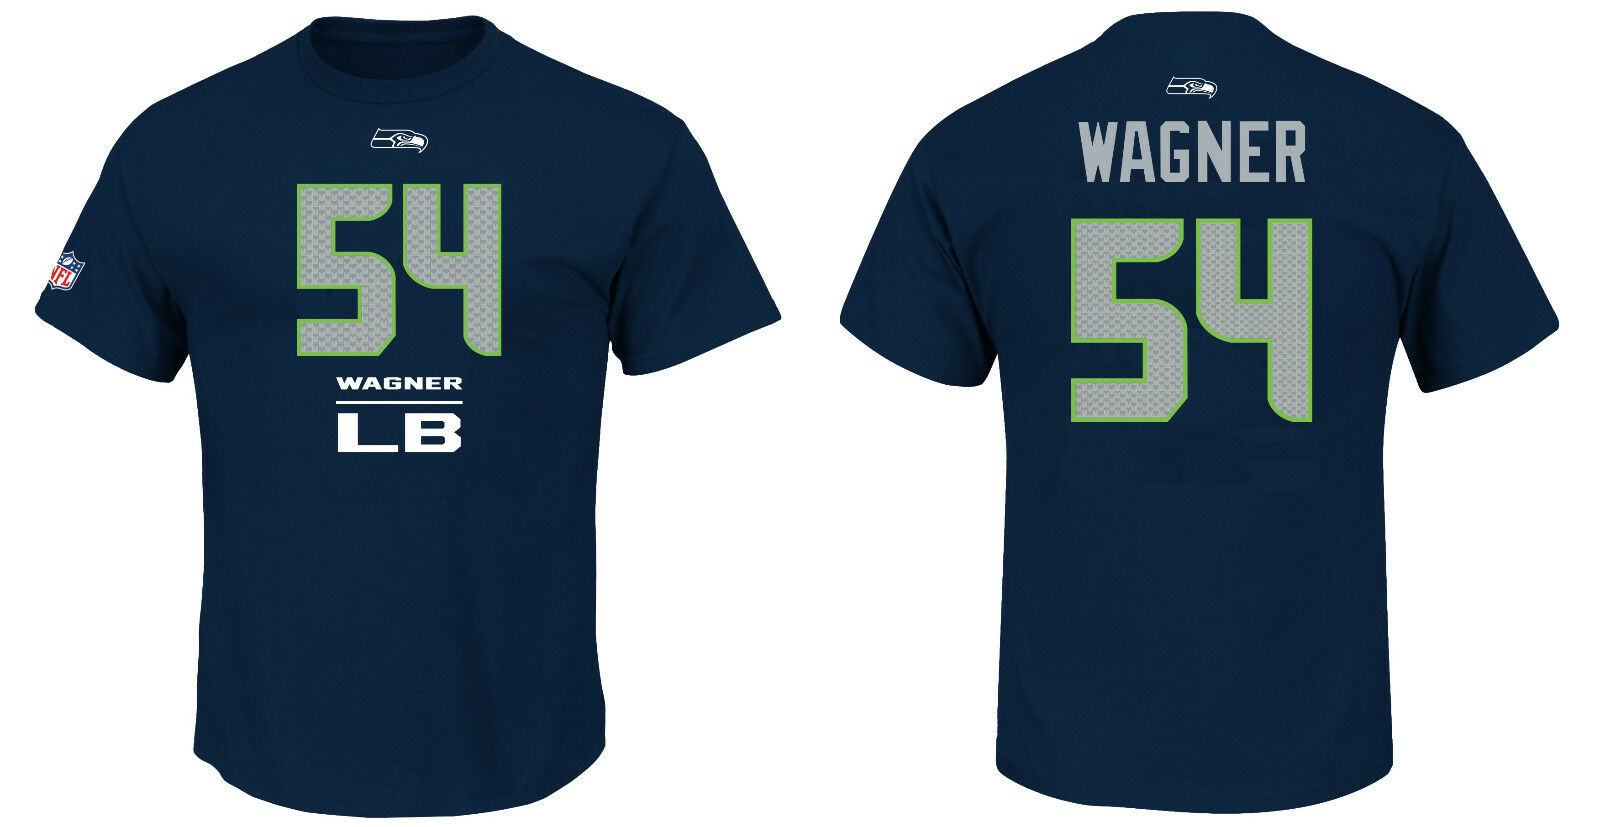 NFL FOOTBALL T-shirt Seattle Seahawks Bobby Wagner 54 LB Line Up Maglia Jersey